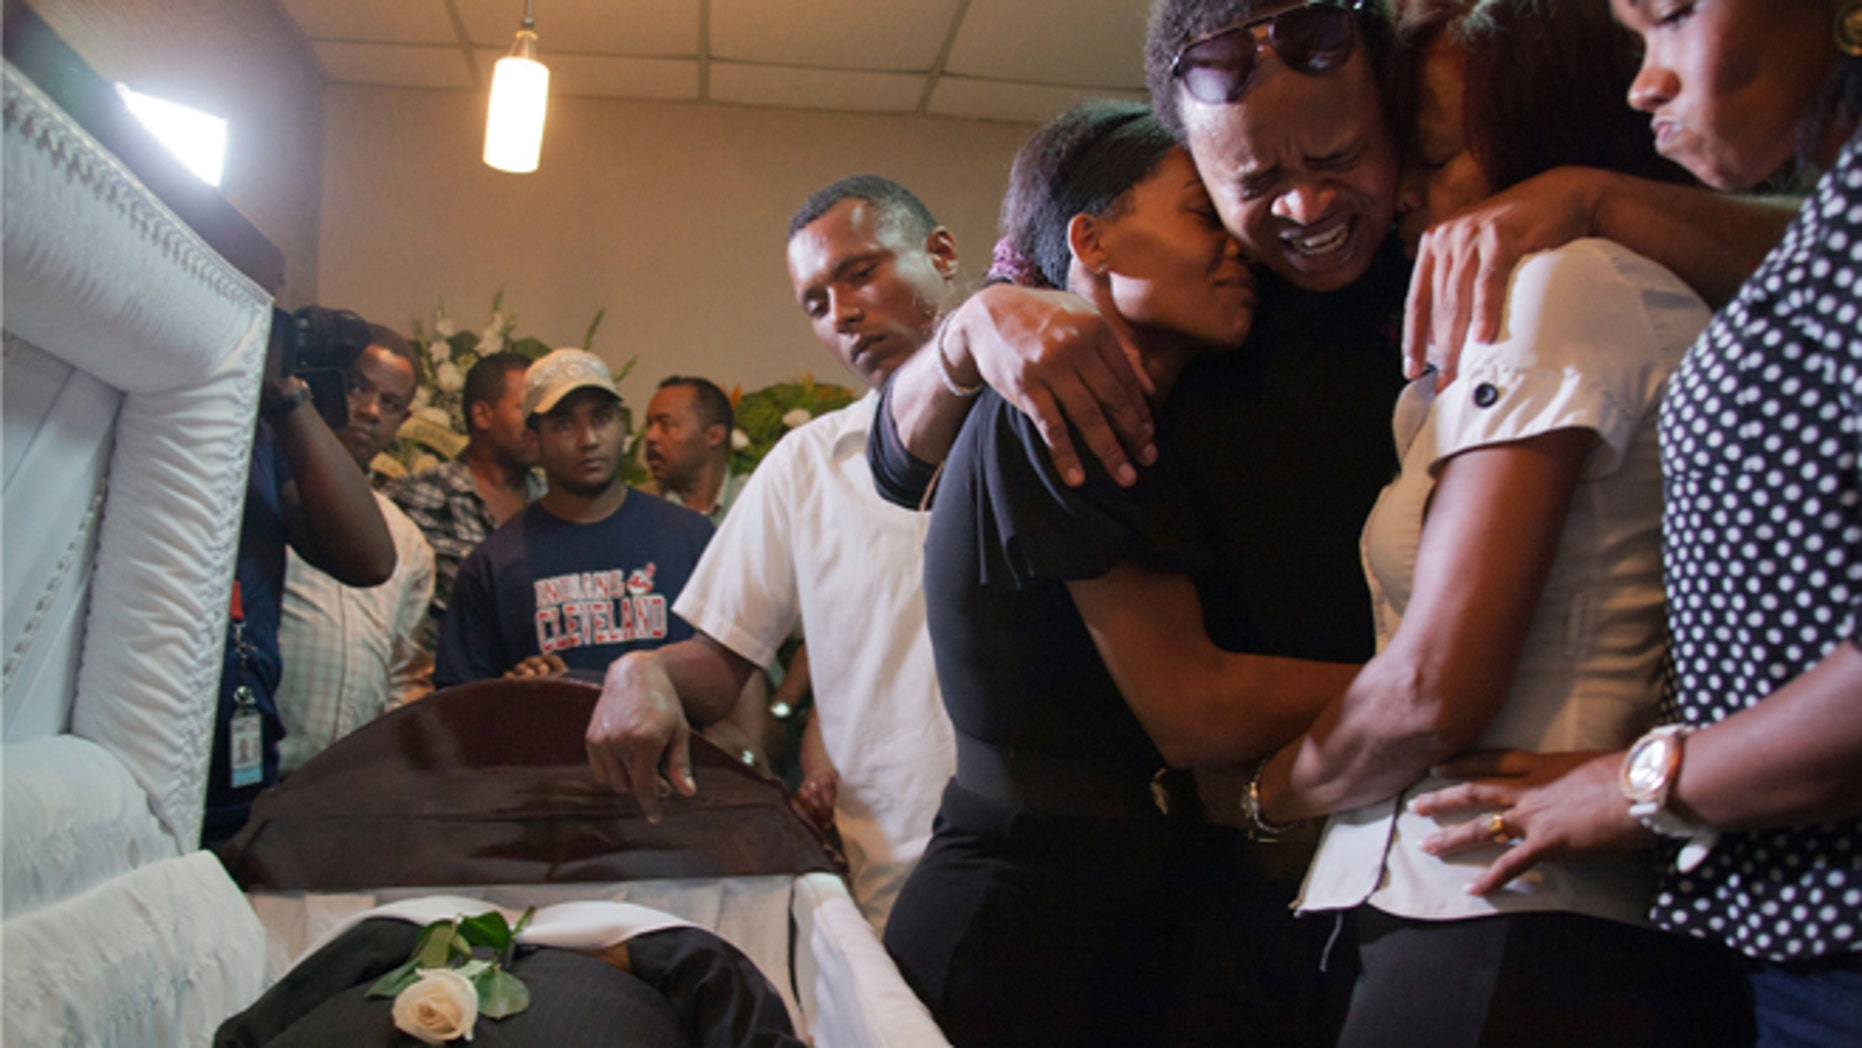 Kansas City Royals player Edinson Volquez, third from Right, embraces his sister Wendy Volquez, left, and mother Ana Ramirez as they stand next to the body of his father during his wake at a funeral home in Santo Domingo, Dominican Republic, Wednesday, Oct. 28, 2015.  (AP Photo/Tatiana Fernandez)